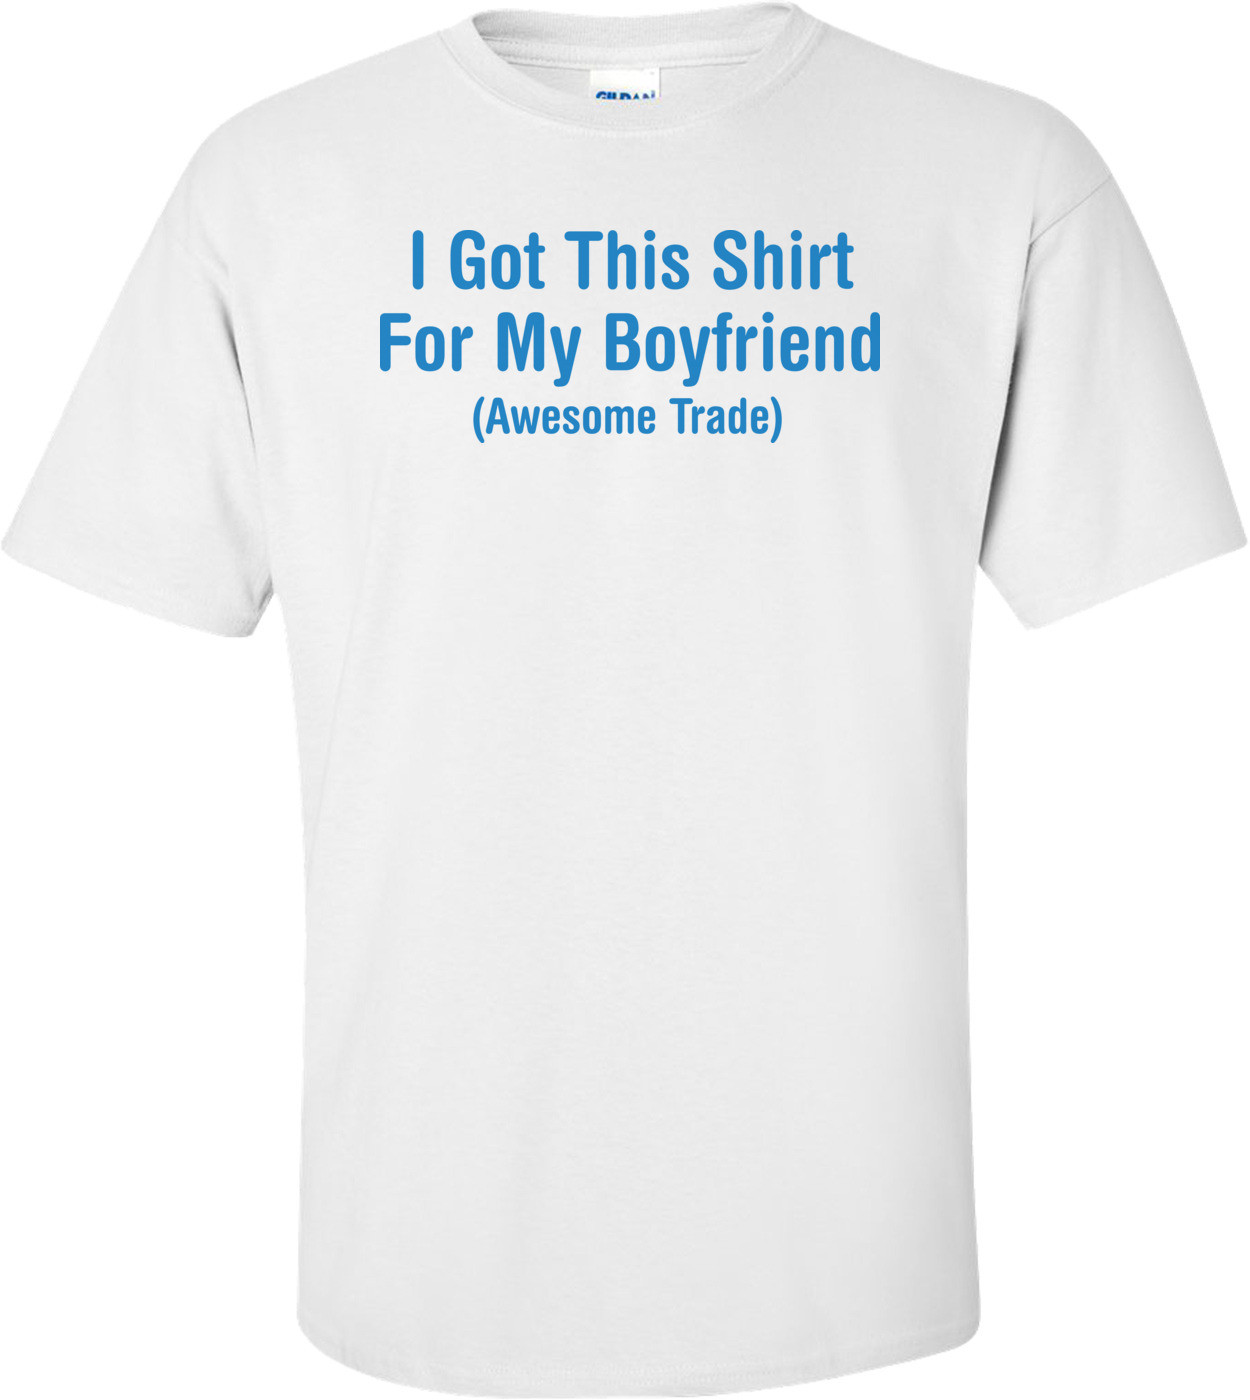 I Got This Shirt For My Boyfriend Awesome Trade T-shirt